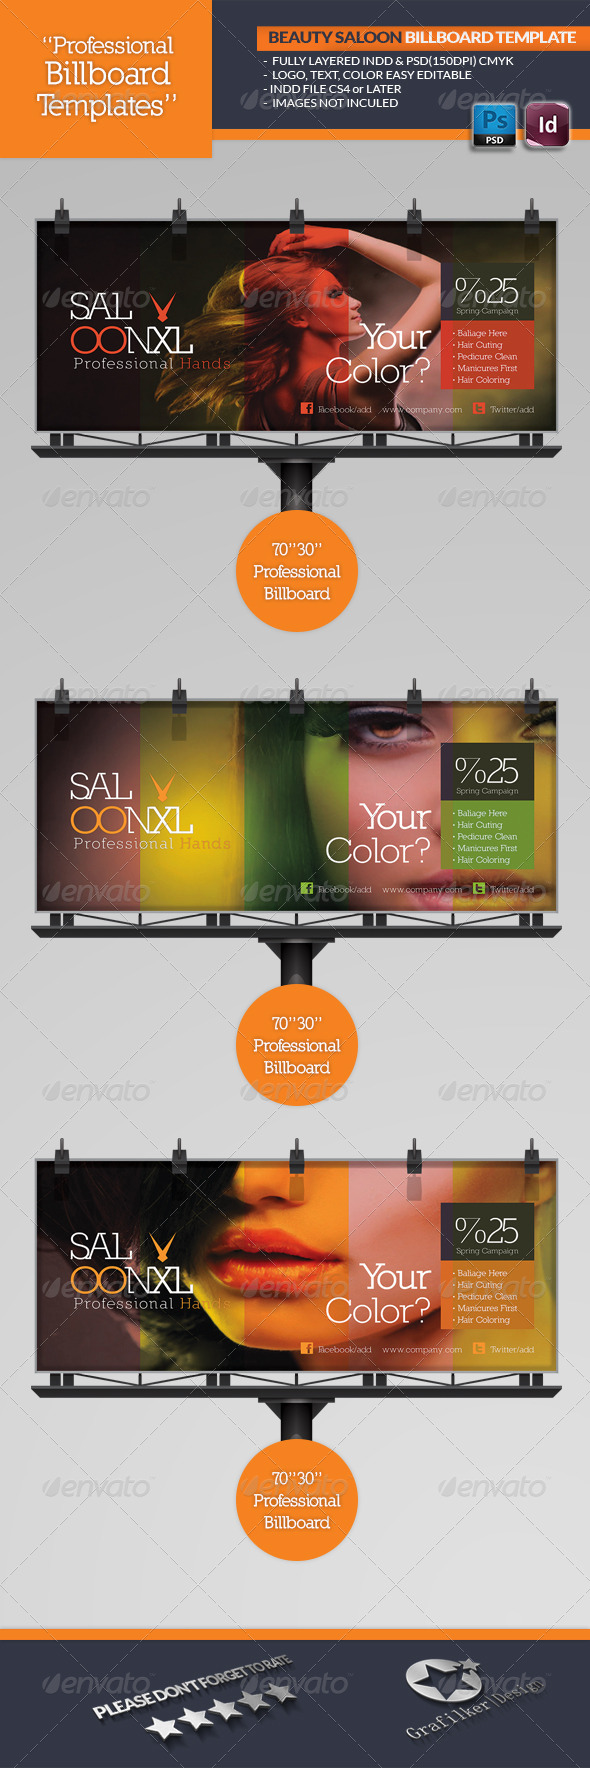 GraphicRiver Beauty Saloon Billboard Template 4582260